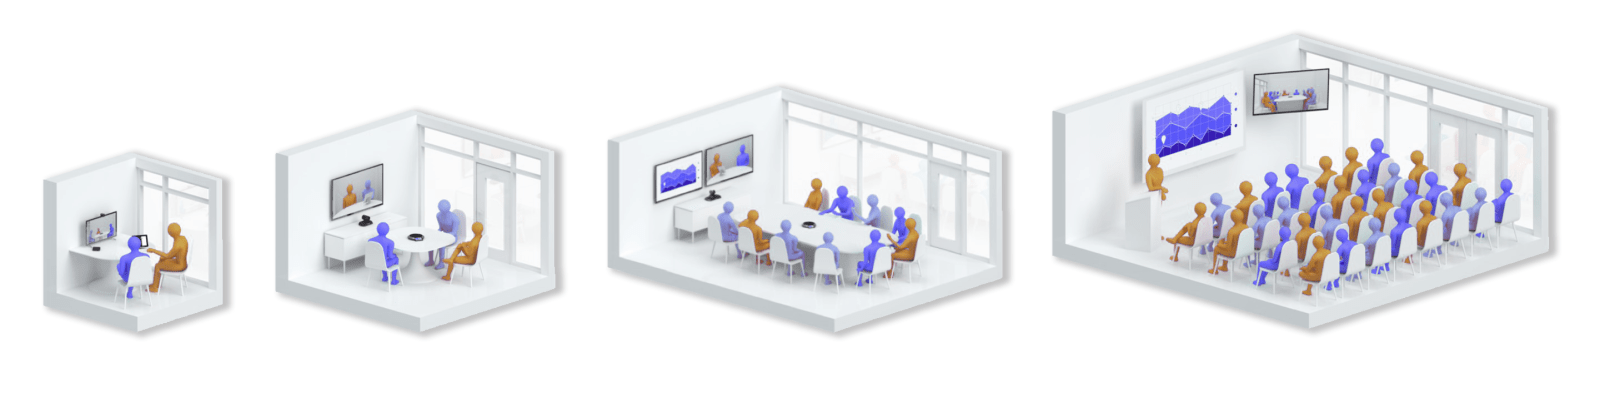 Visualisation of different meeting room sizes and configurations.